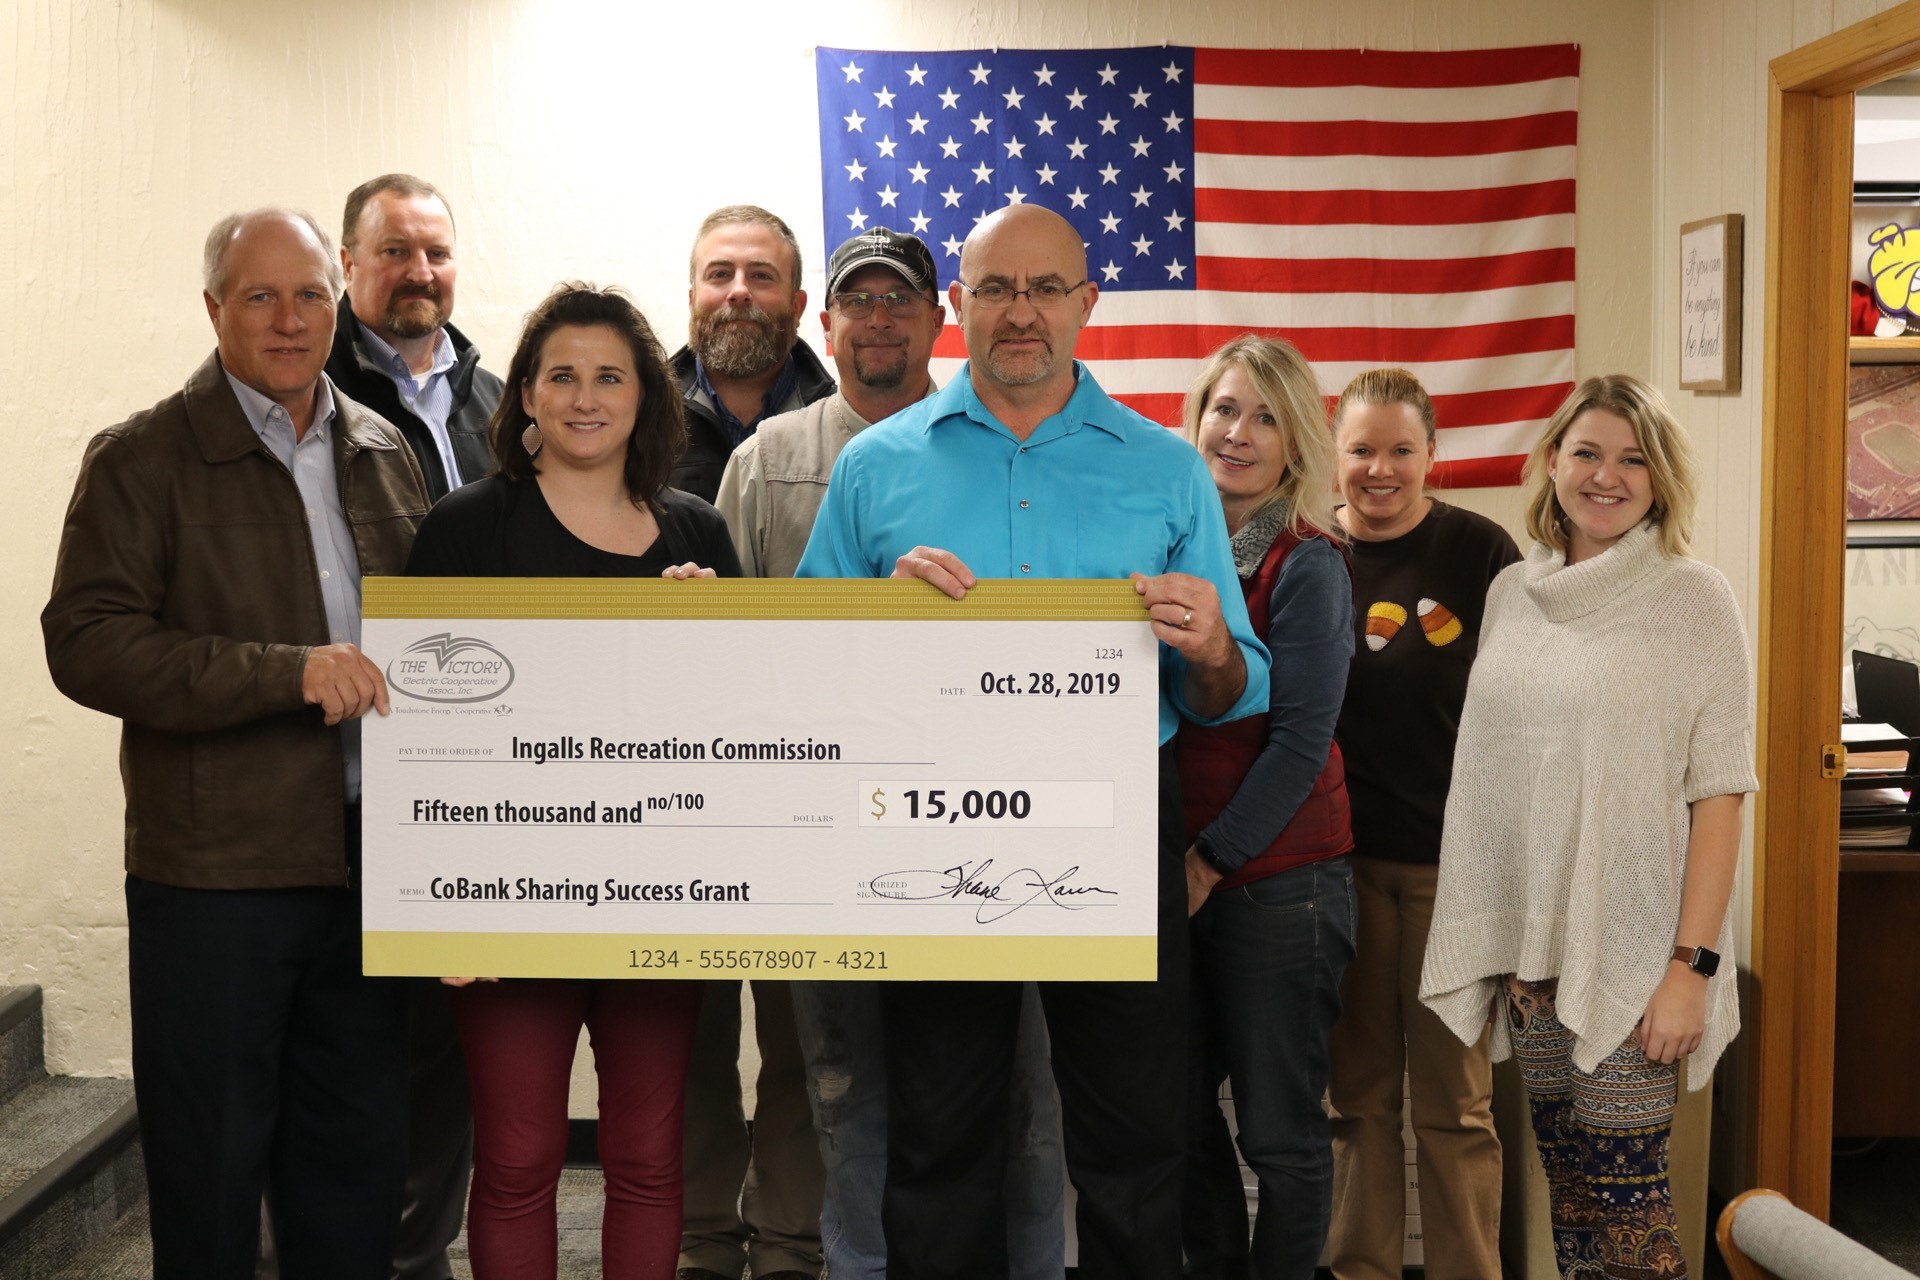 CoBank Sharing Success Grant Winners in 2019